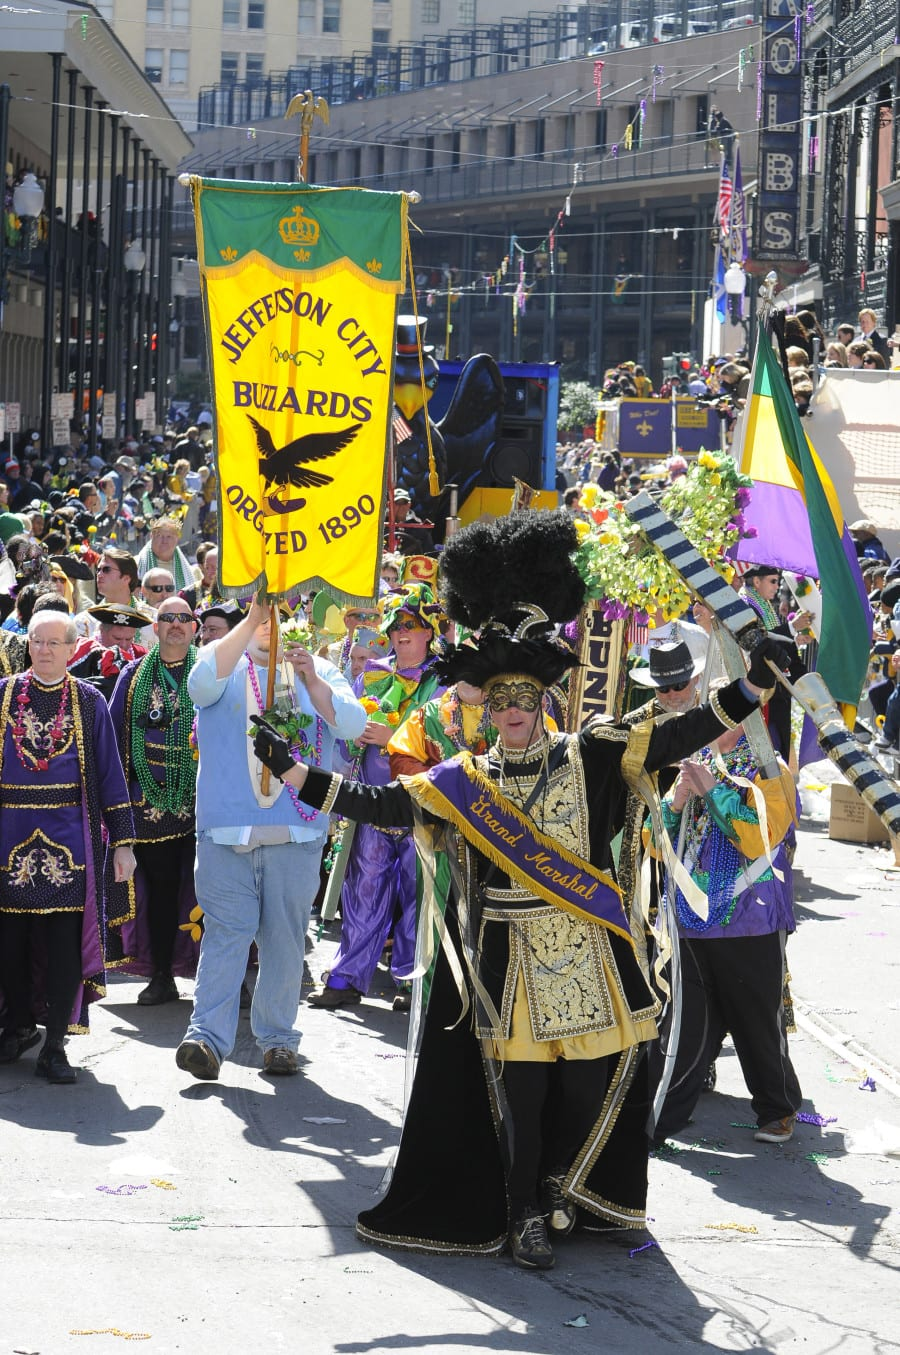 Revelers take to the streets during the Rex parade on Mardi Gras day in New Orleans, Louisiana, USA 14 February 2010.